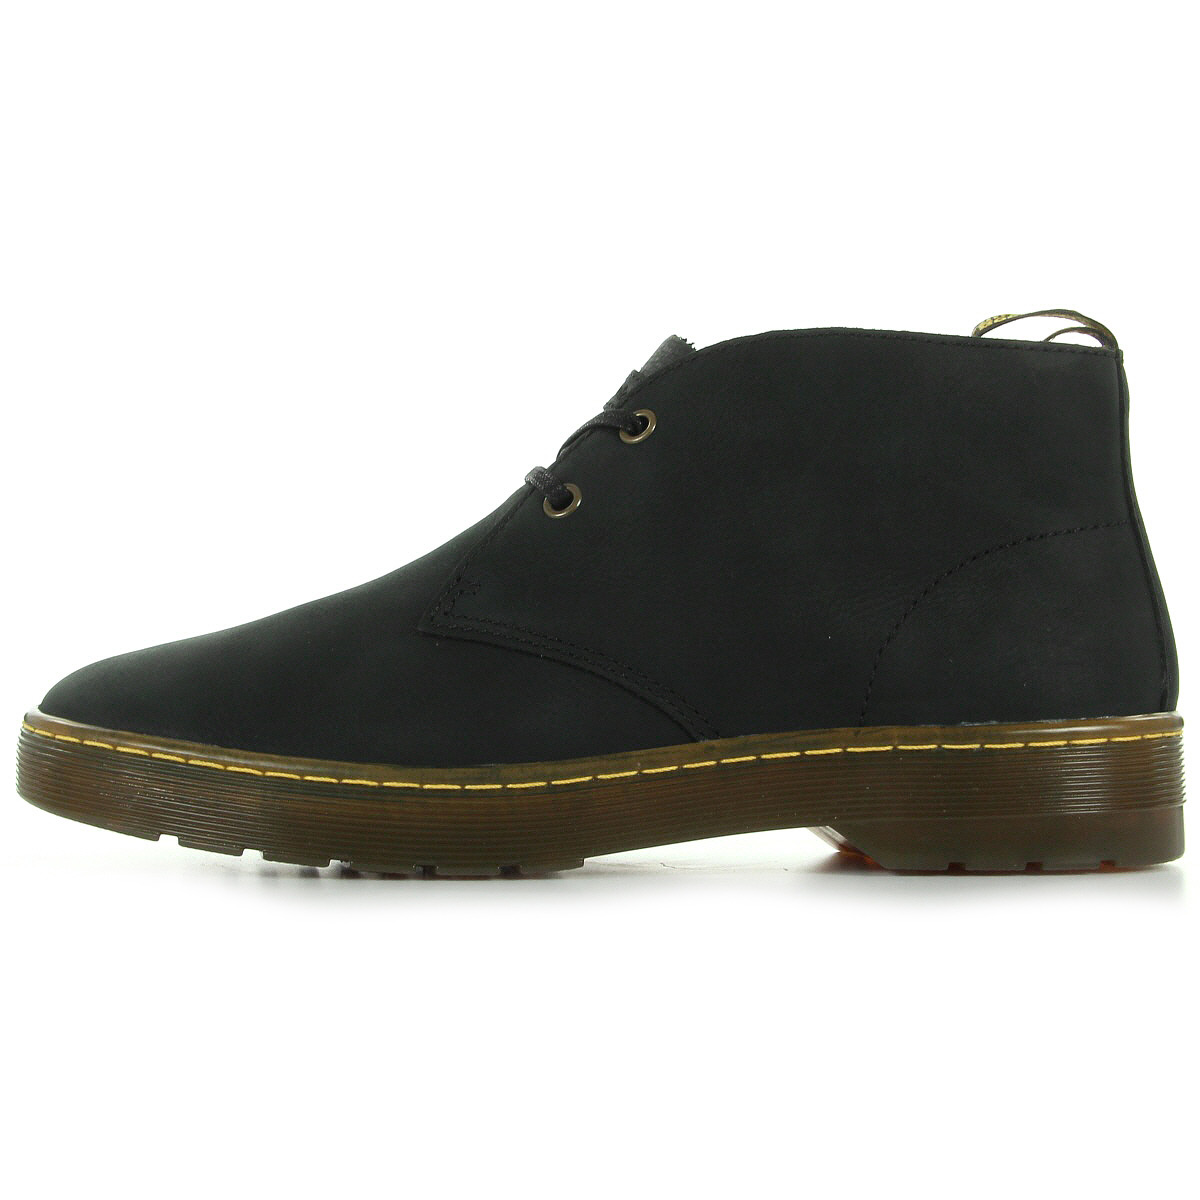 a3d3a2abceedf8 Dr Martens Cabrillo 16593001 Bottines homme Pas Cher Manchester ...